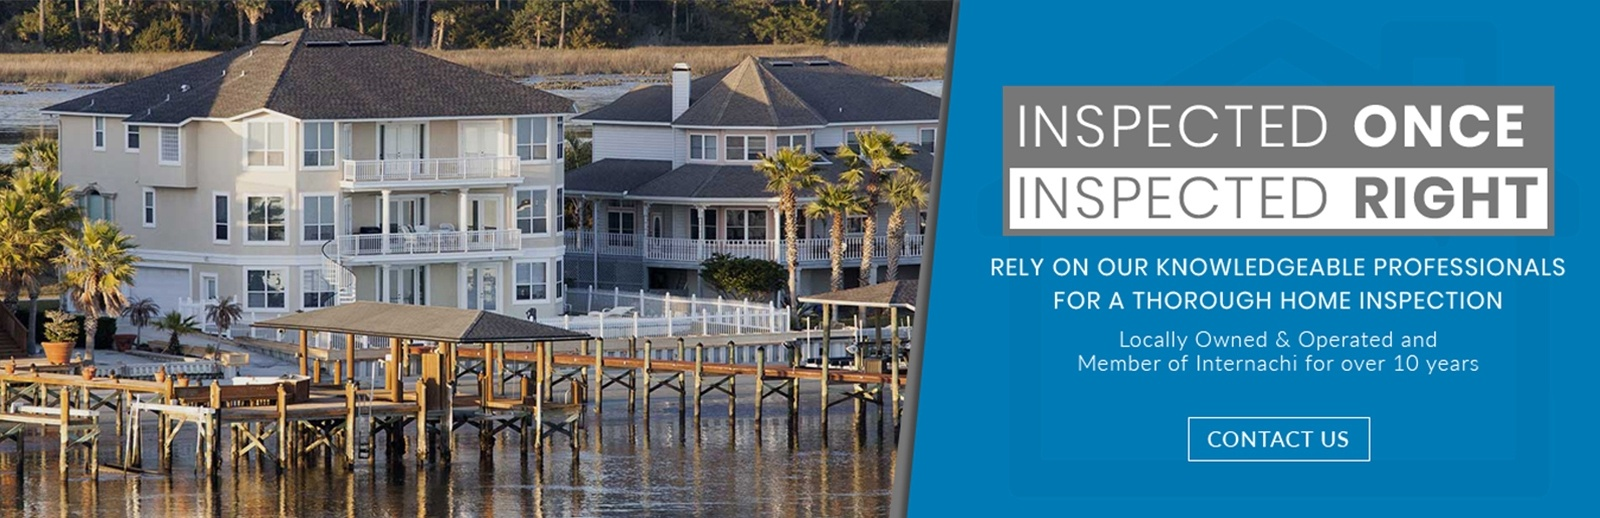 Certified Home Inspectors Homosassa FL